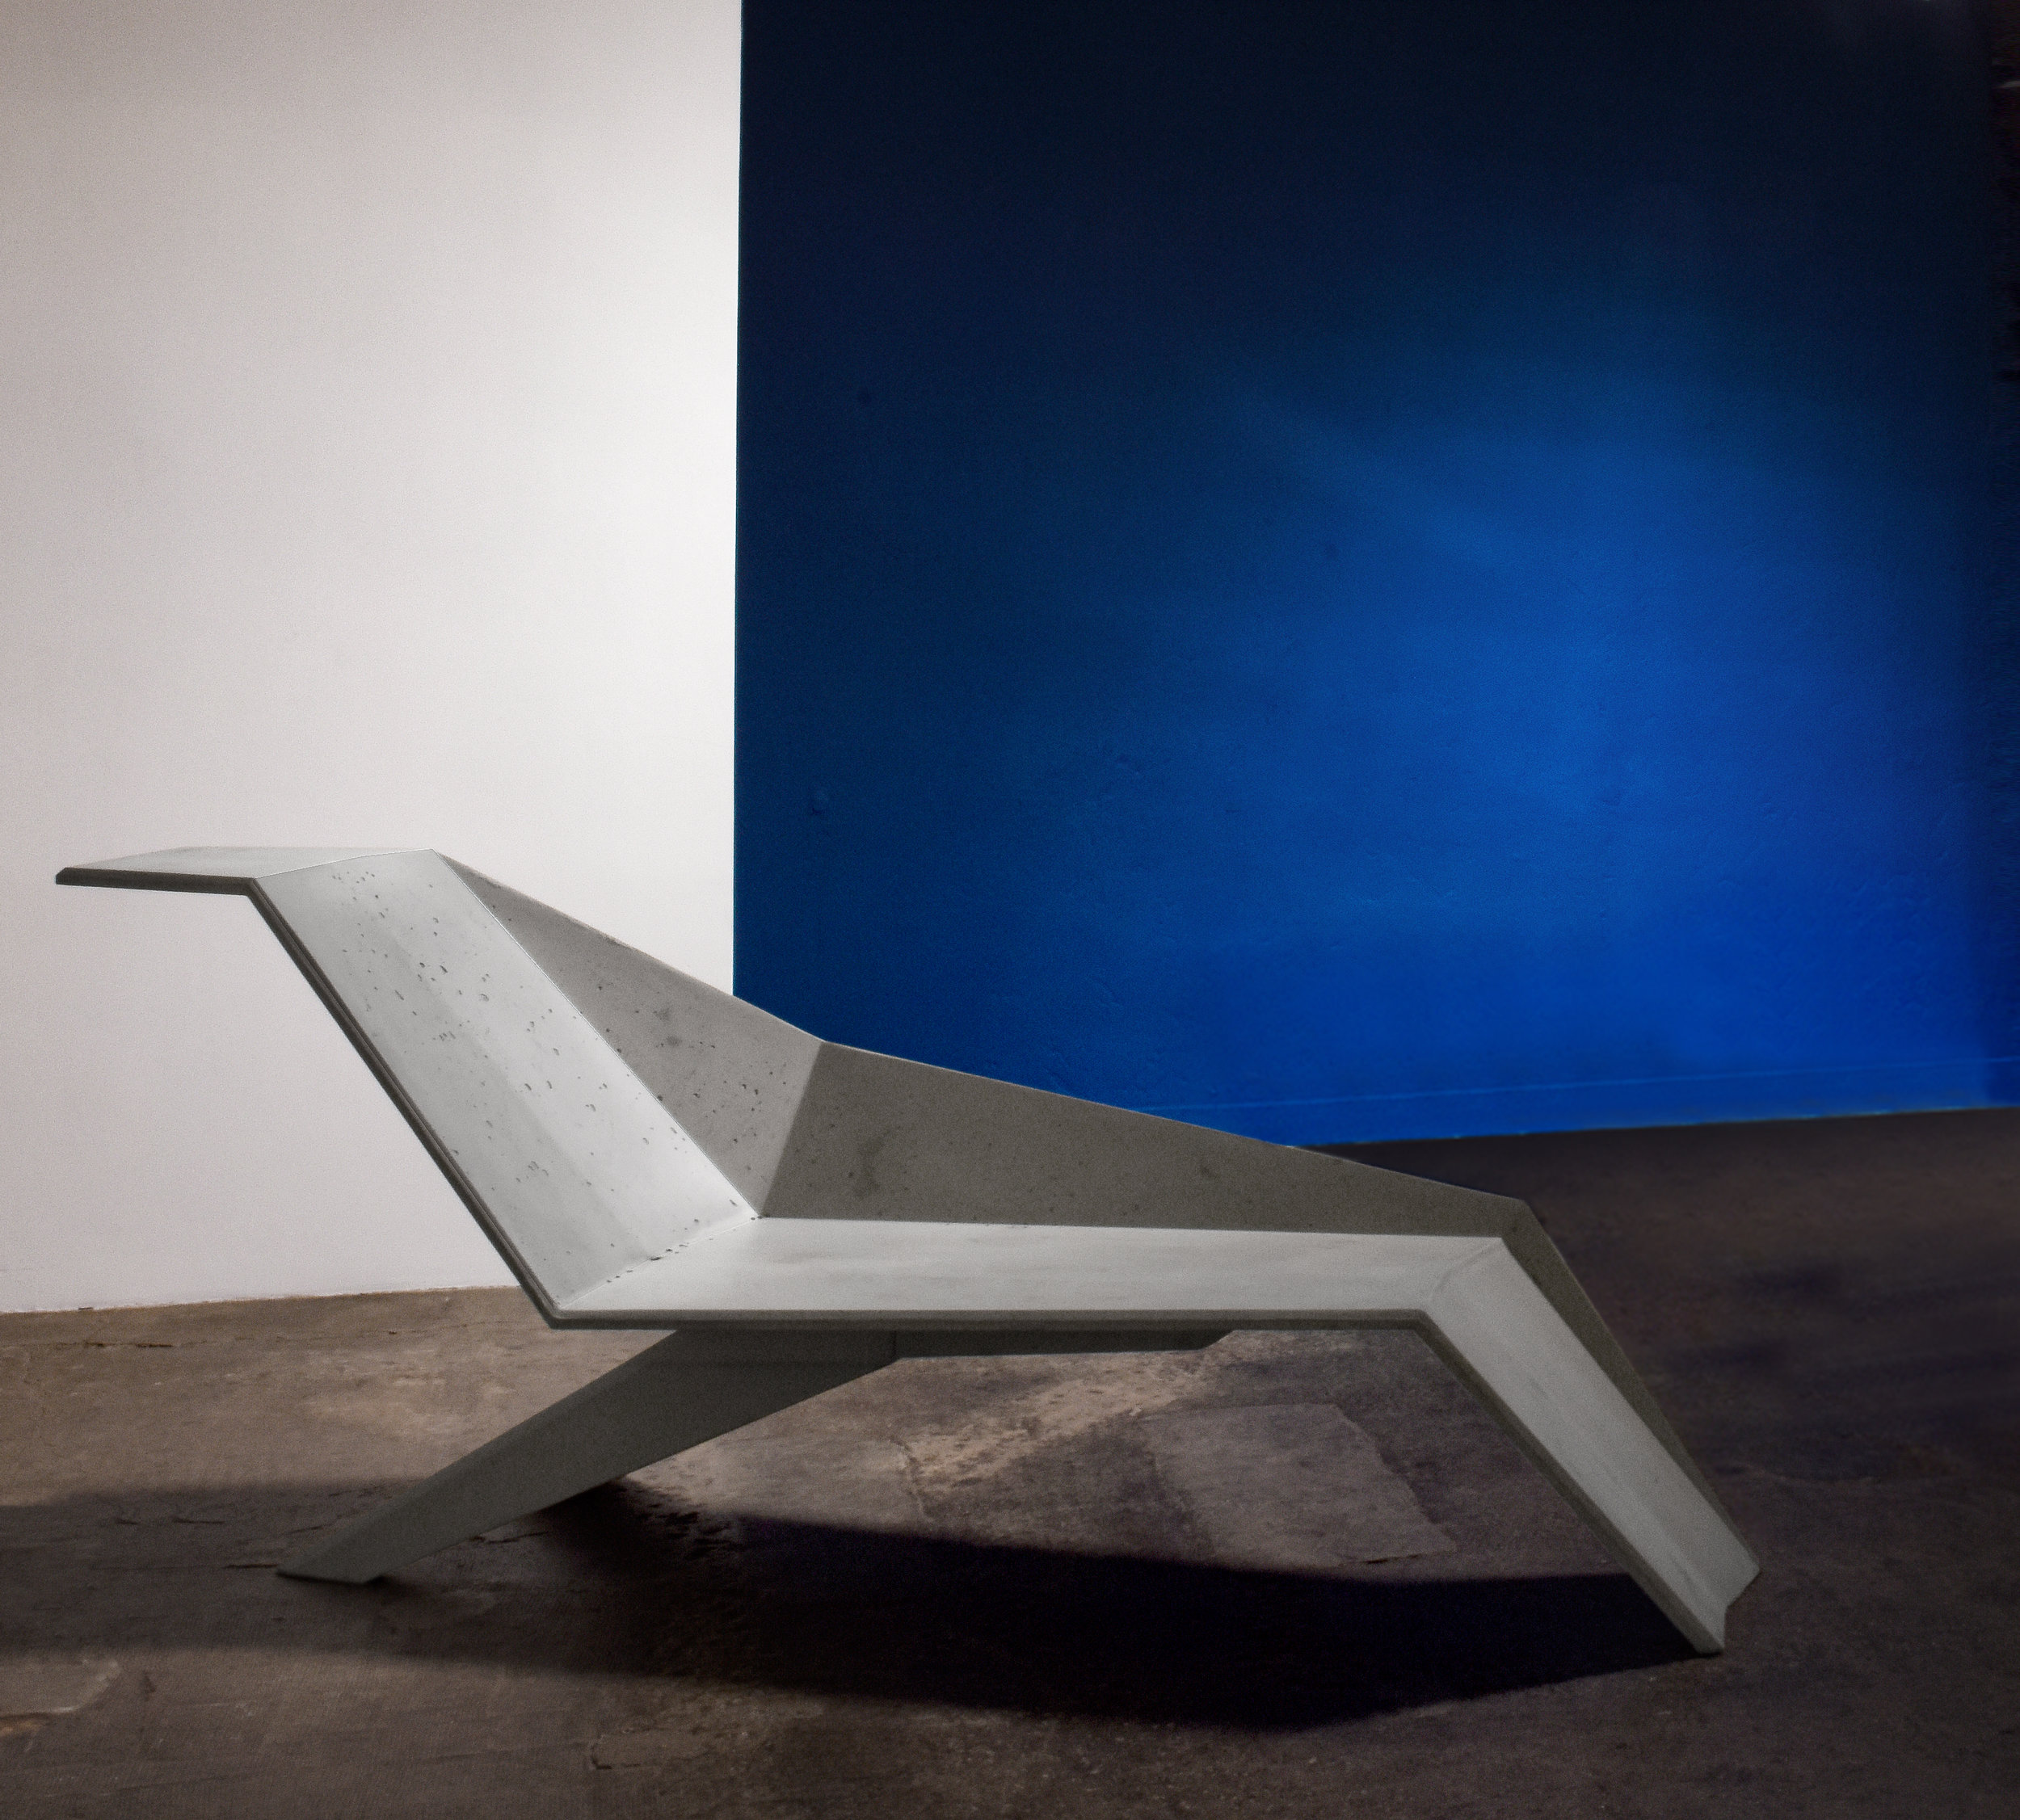 JIMMY DELATOUR - Resolutely brutalist, the cast concrete chaise longue unfolds in space, as an invitation to relax both indoors and outdoors.contact: info@delatourdesign.com